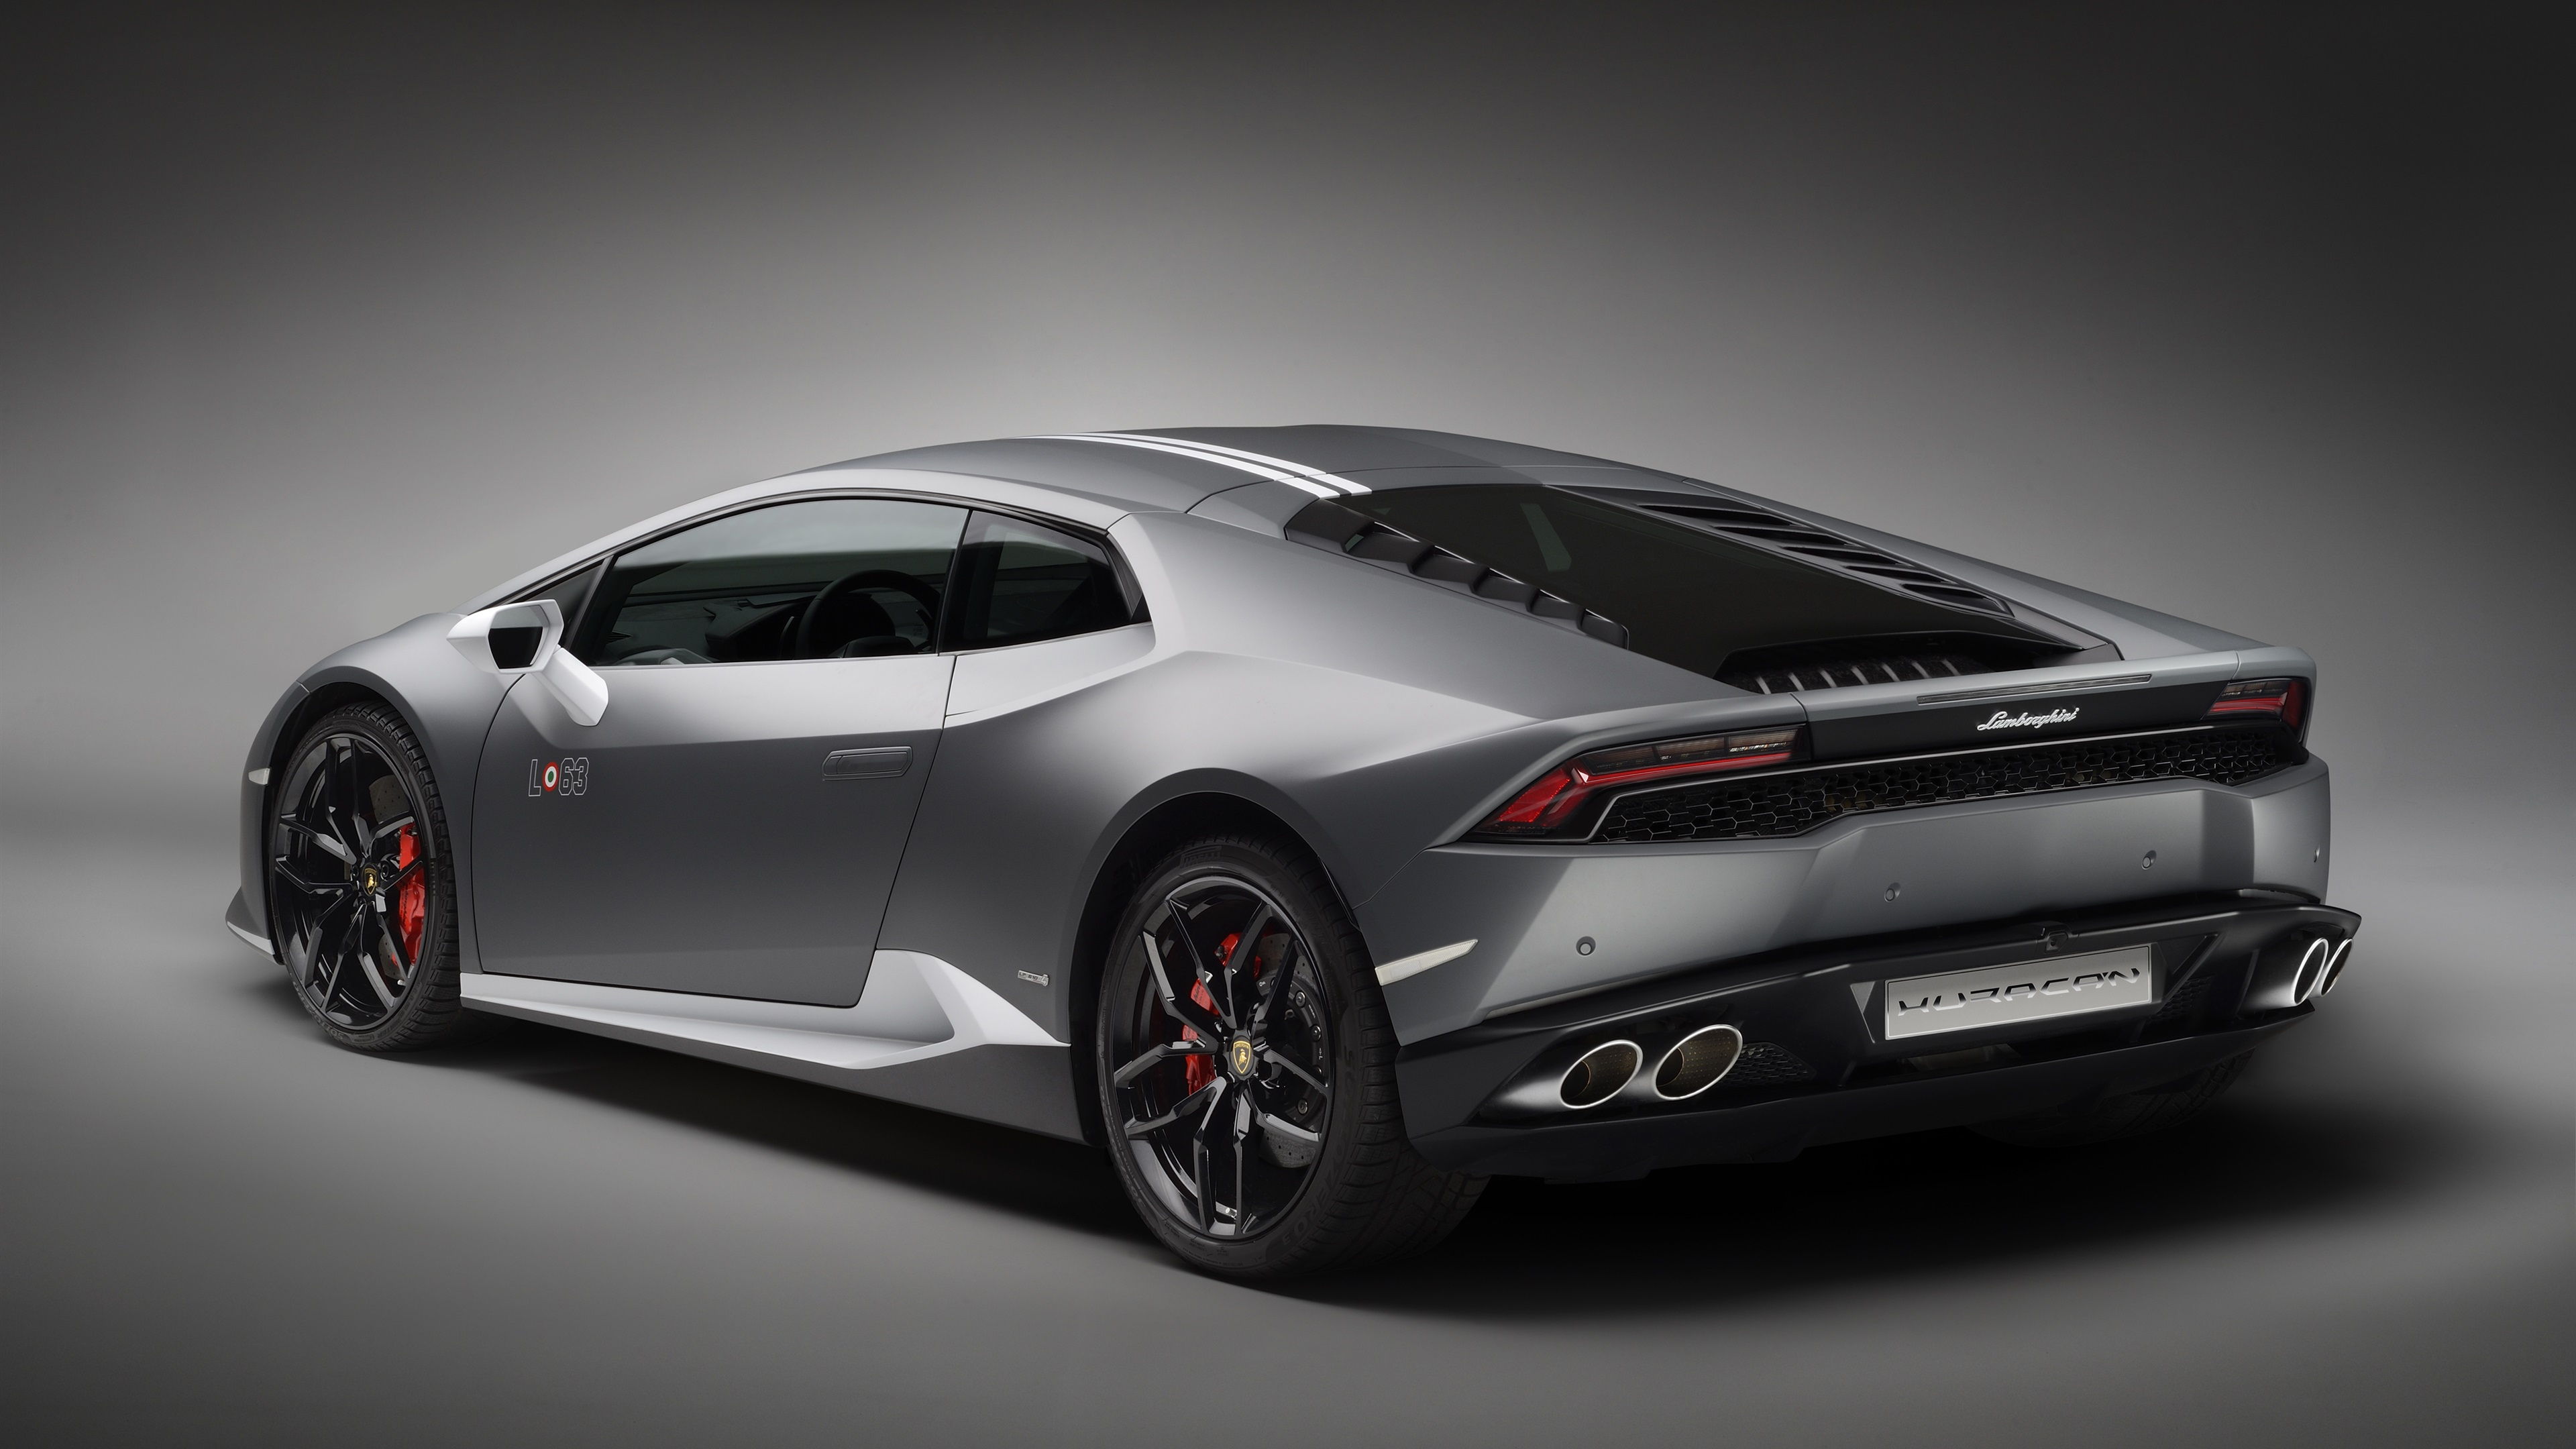 Wallpaper Lamborghini Huracan Lp 610 4 Gray Supercar Rear